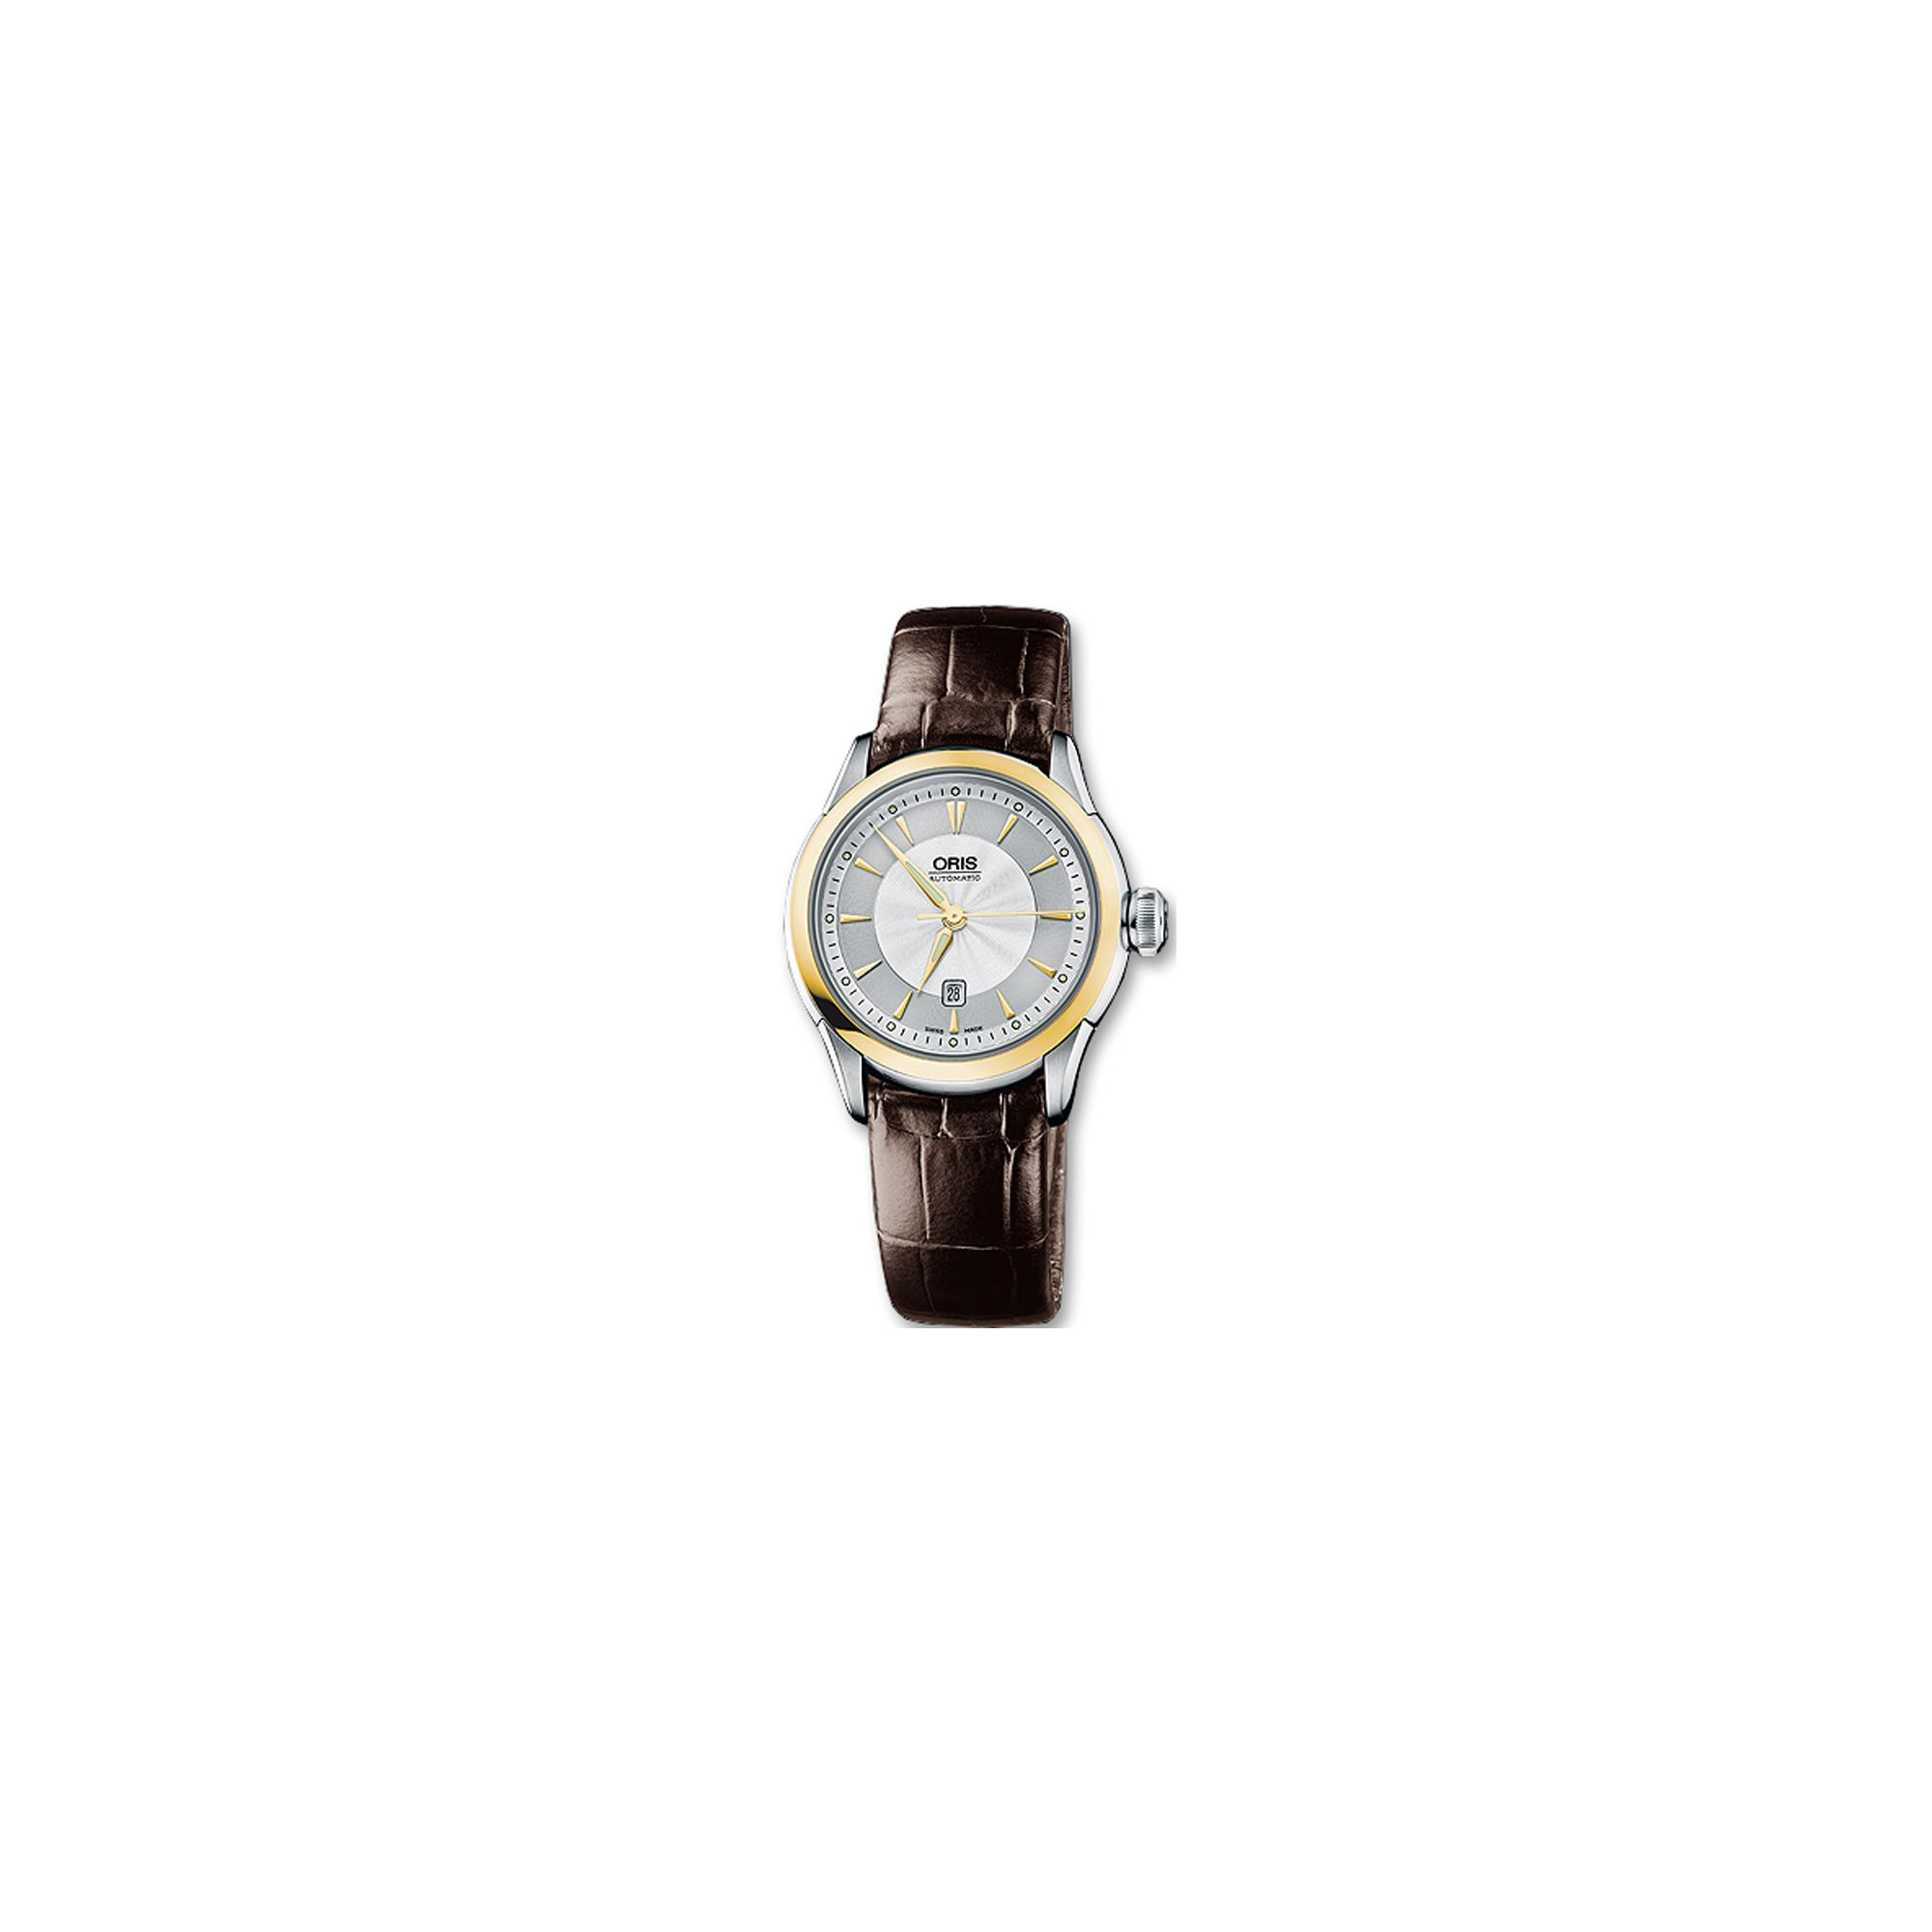 Oris Ladies Brown Artelier Leather Strap Watch 56176044351LS at Tesco Direct